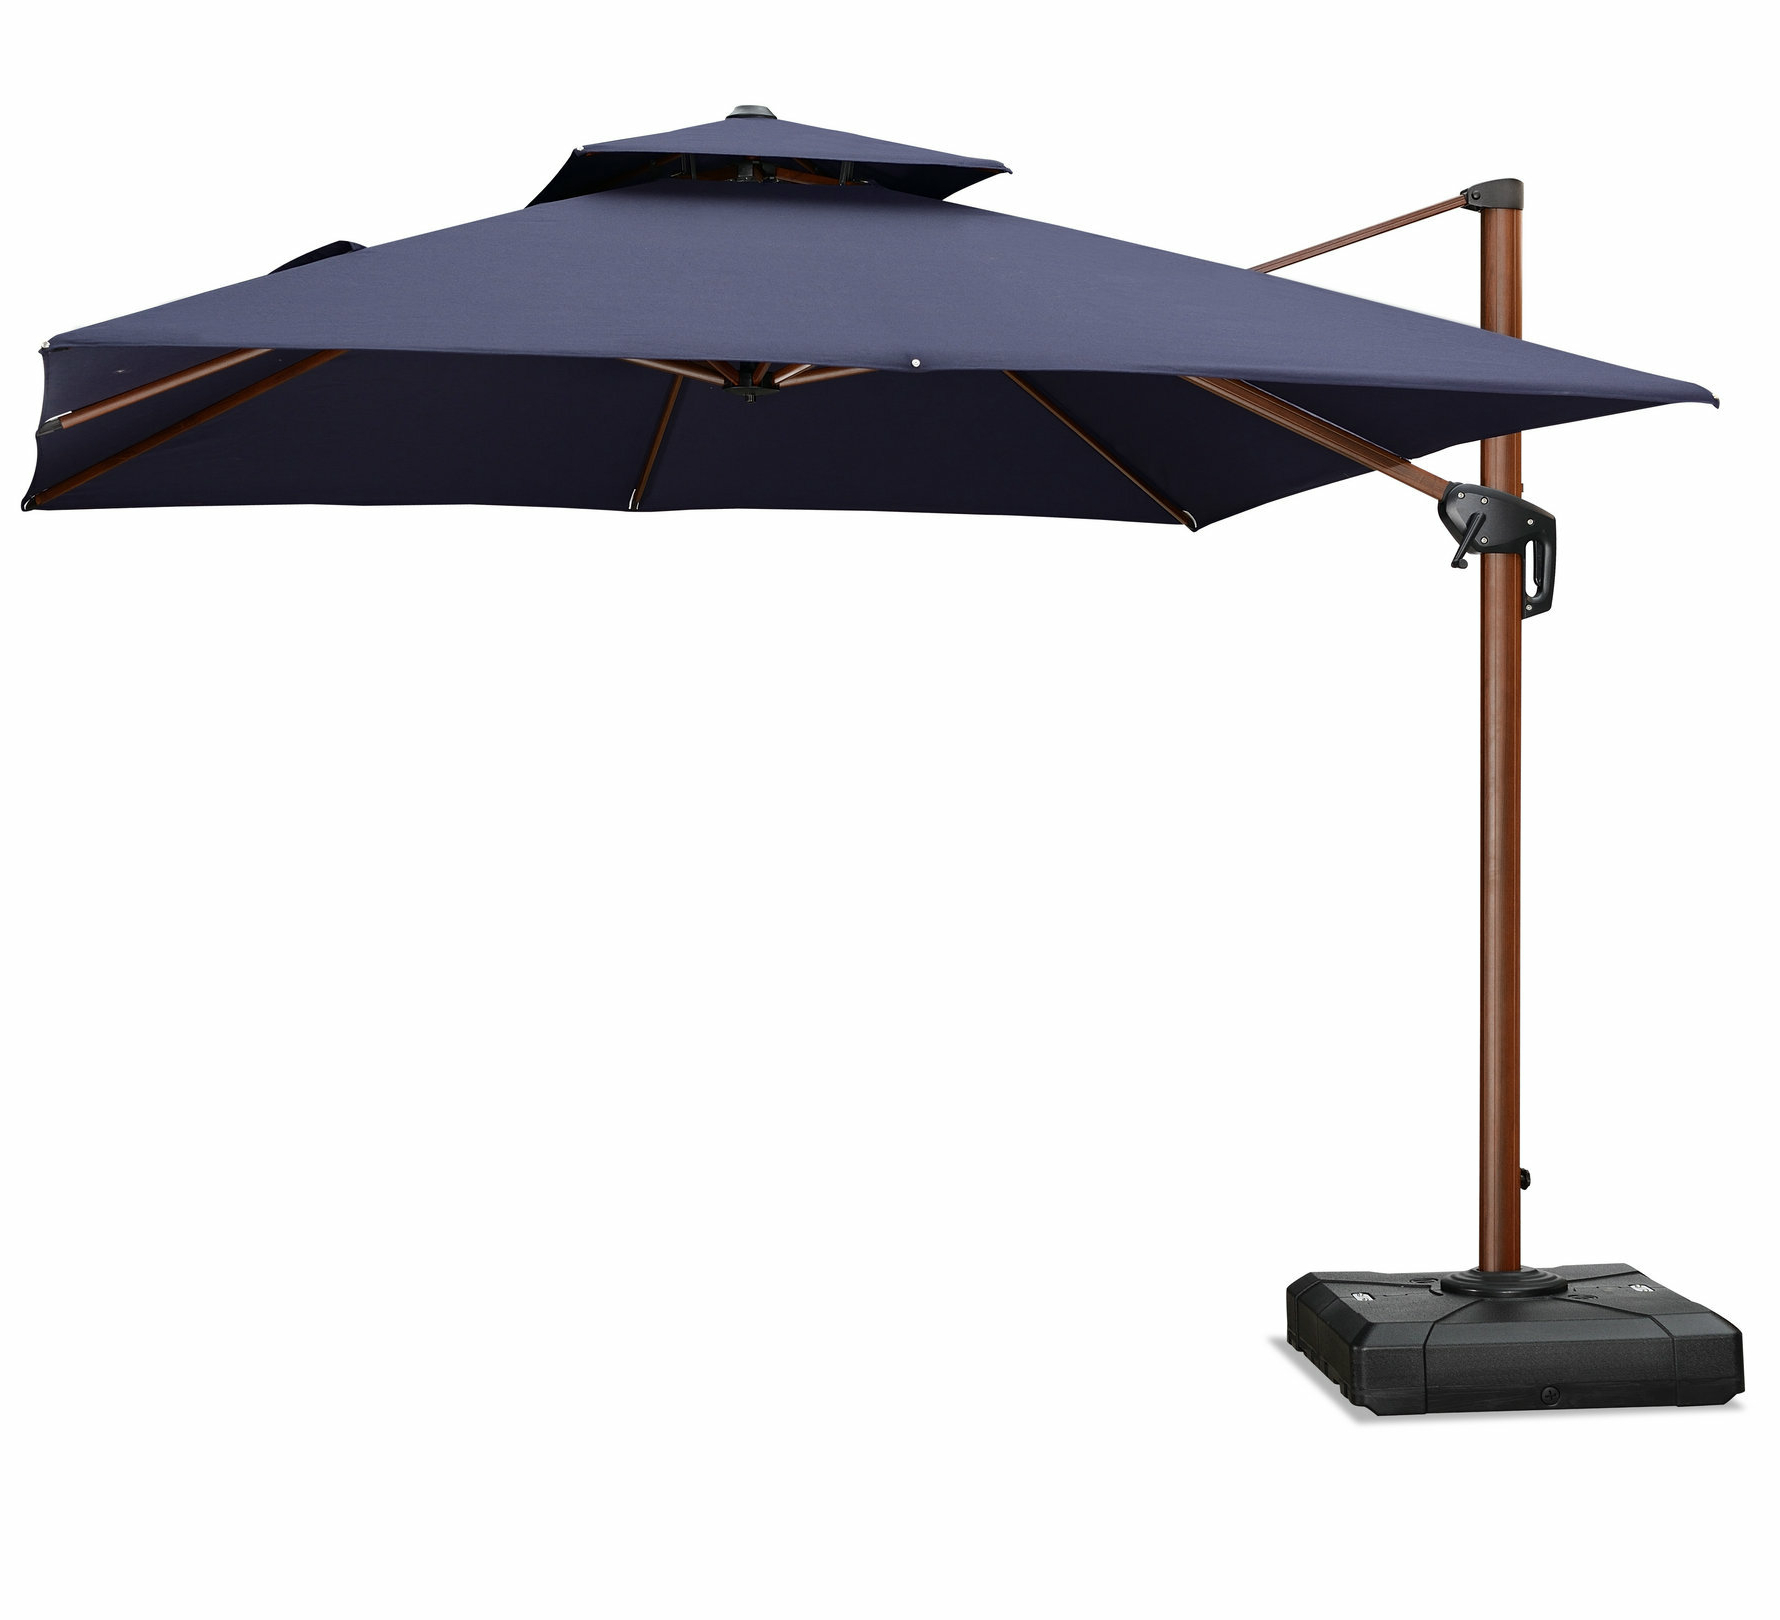 Windell Square Cantilever Umbrellas For Most Popular Waddell 10' Square Cantilever Umbrella (View 5 of 20)